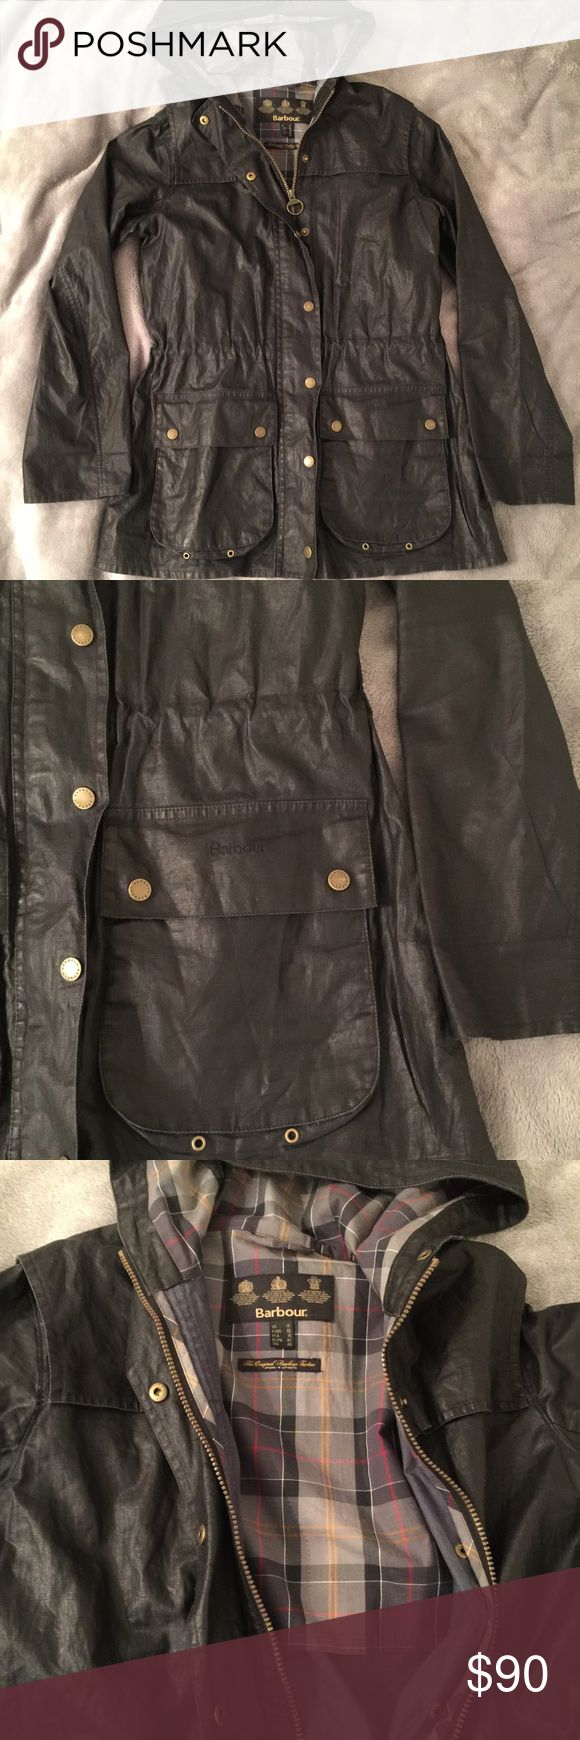 BARBOUR Women's rain jacket, size 10 US Back size 10US, 14UK waxed jacket. Fits like a medium. Lightweight. Drawstring waist. Great condition just slightly wrinkles because you can't wash these waxed jackets or they lose their finish. Bought in London at the Barbour store. Barbour Jackets & Coats Utility Jackets